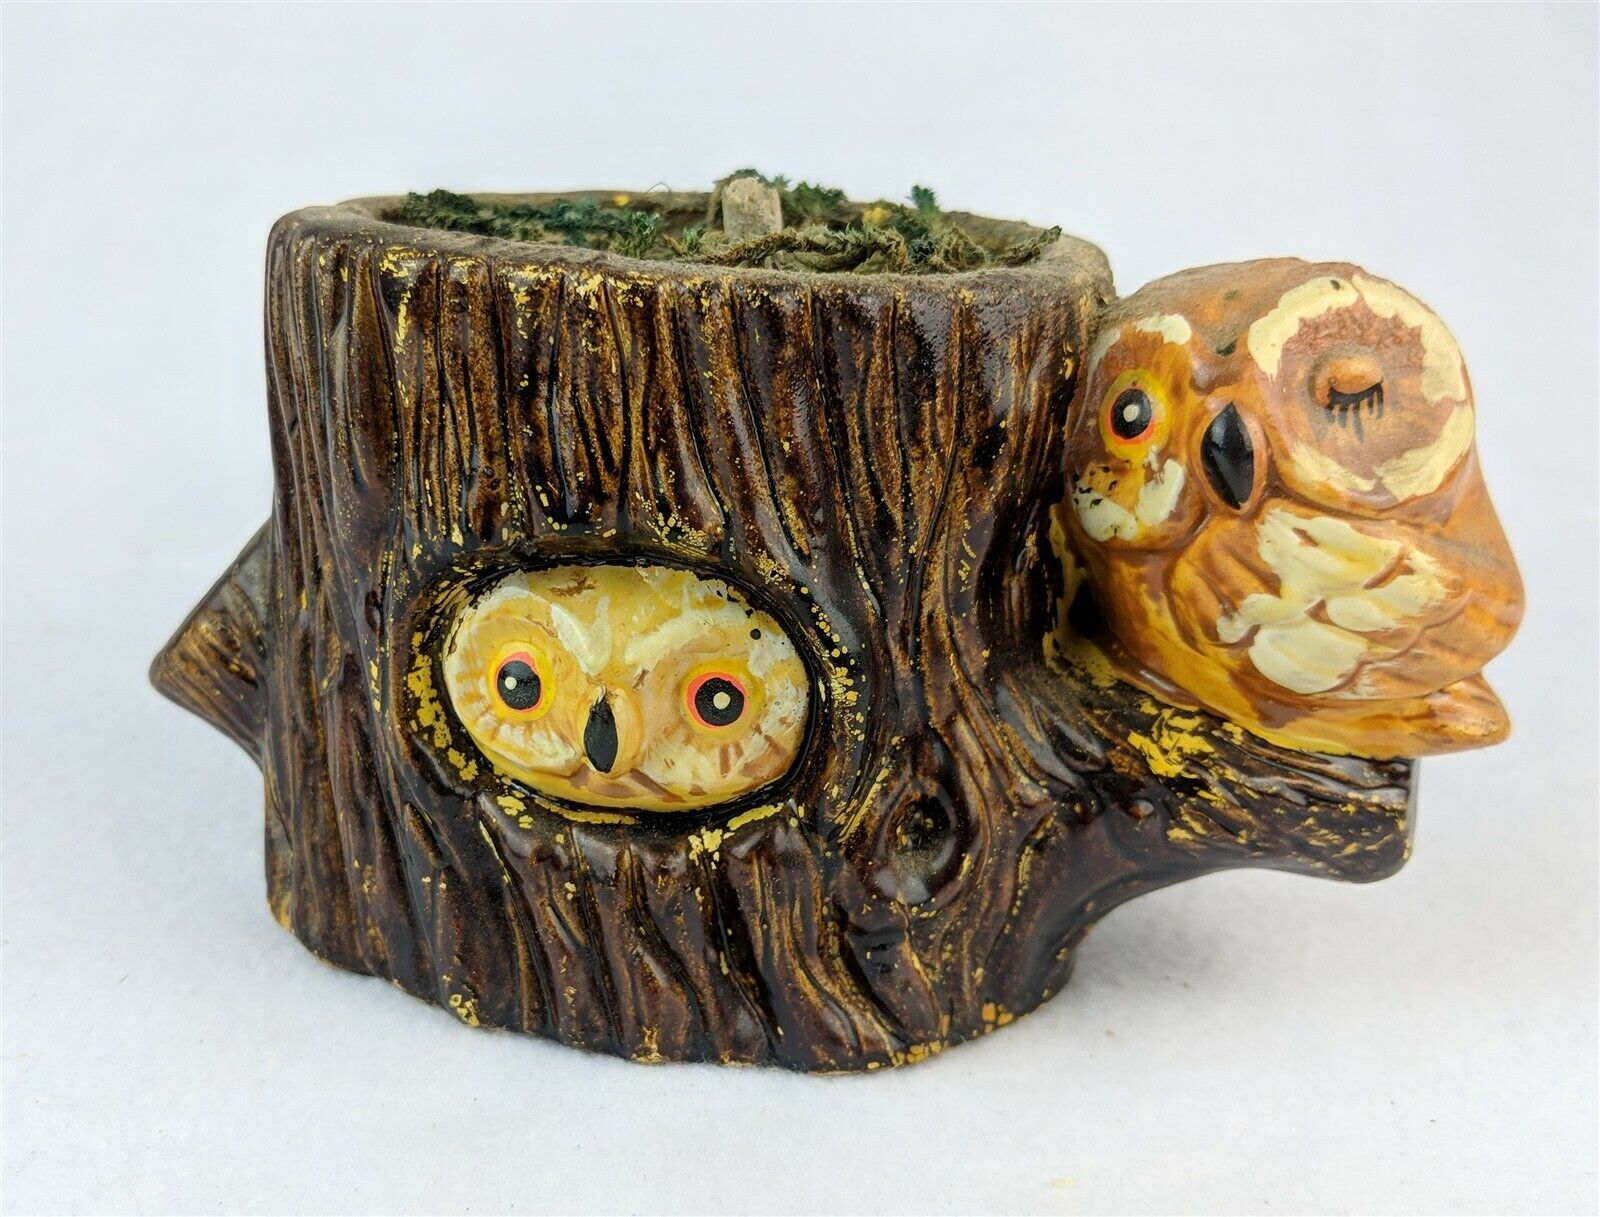 Pair Of Owls On Tree Stump Figurine Collectible Owl